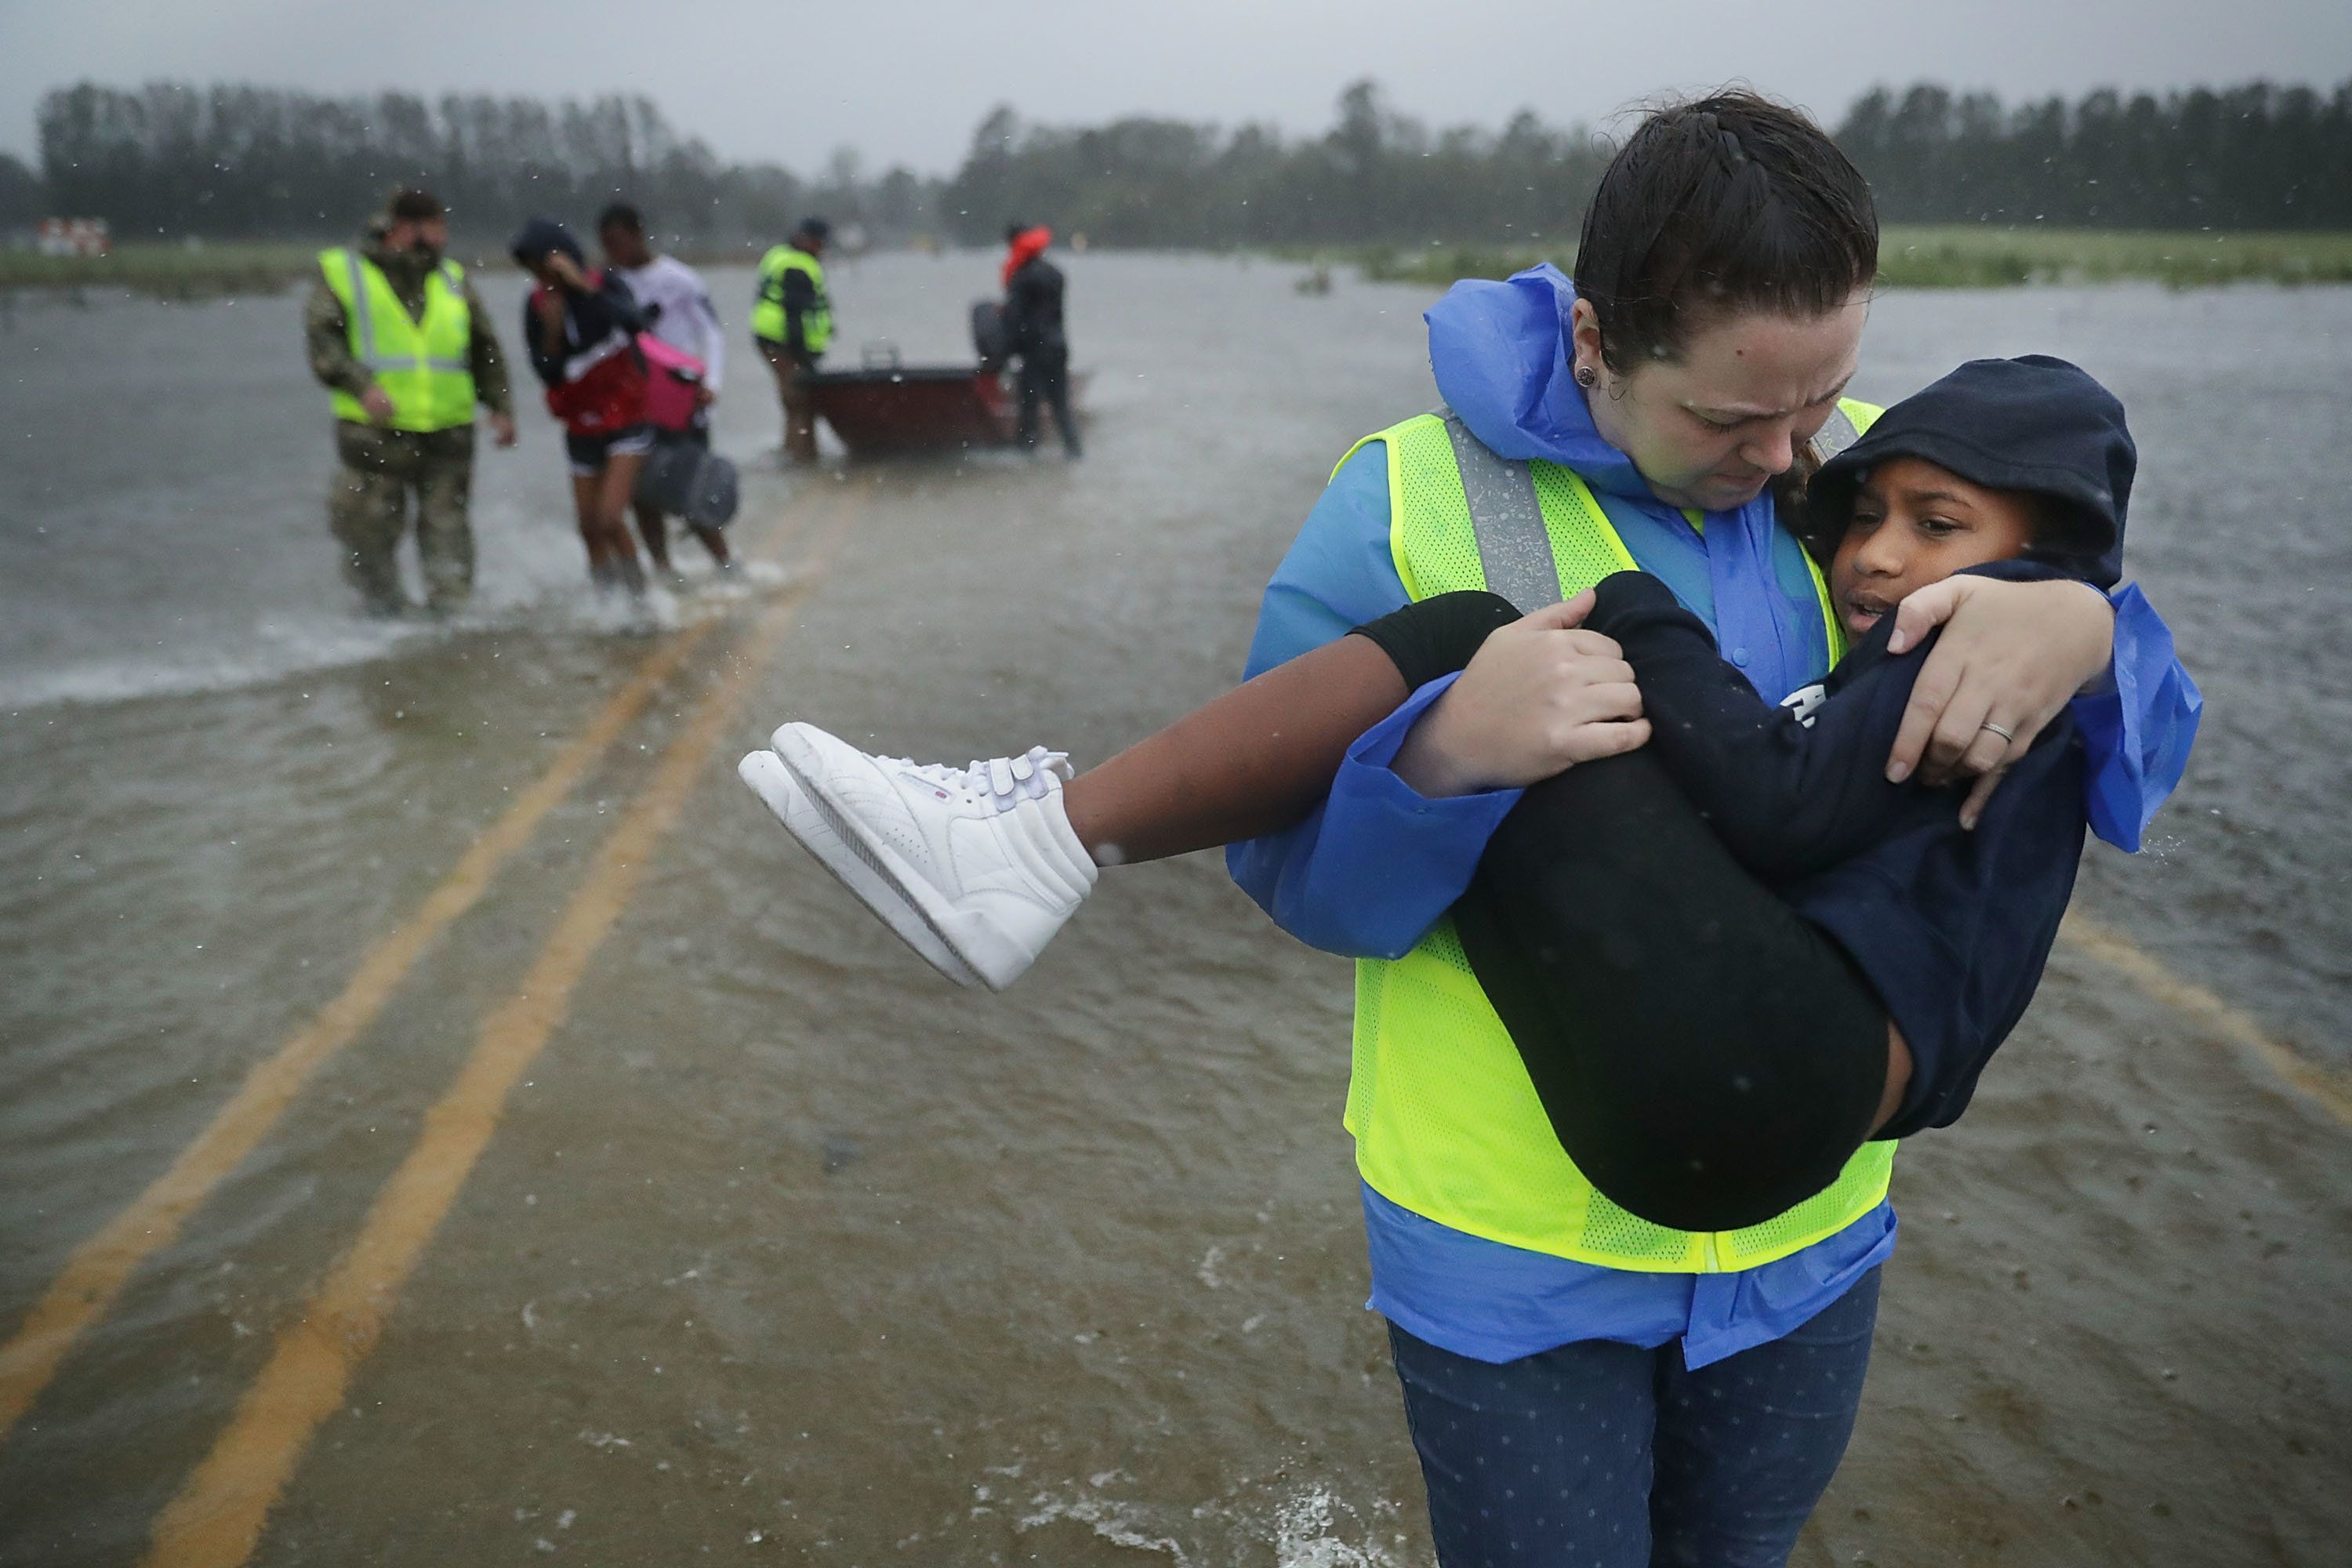 JAMES CITY, NC - SEPTEMBER 14:  Volunteers from the Civilian Crisis Response Team help rescue three children from their flooded home September 14, 2018 in James City, United States. Hurricane Florence made landfall in North Carolina as a Category 1 storm and flooding from the heavy rain is forcing hundreds of people to call for emergency rescues in the area around New Bern, North Carolina, which sits at the confluence of the Nueces and Trent rivers.  (Photo by Chip Somodevilla/Getty Images)